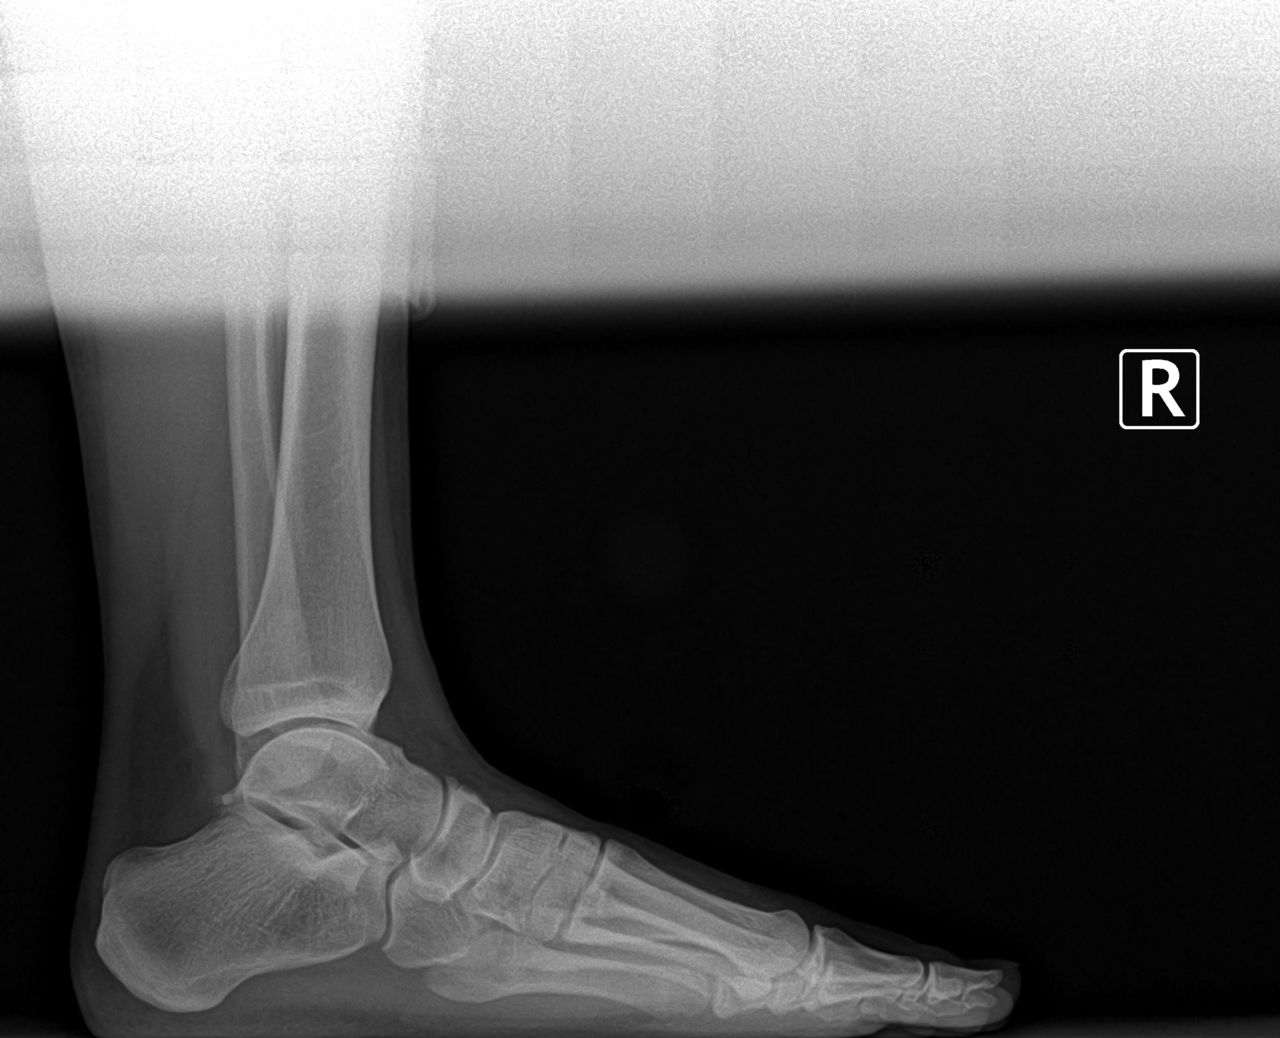 preoperative bunion and tailor's bunion